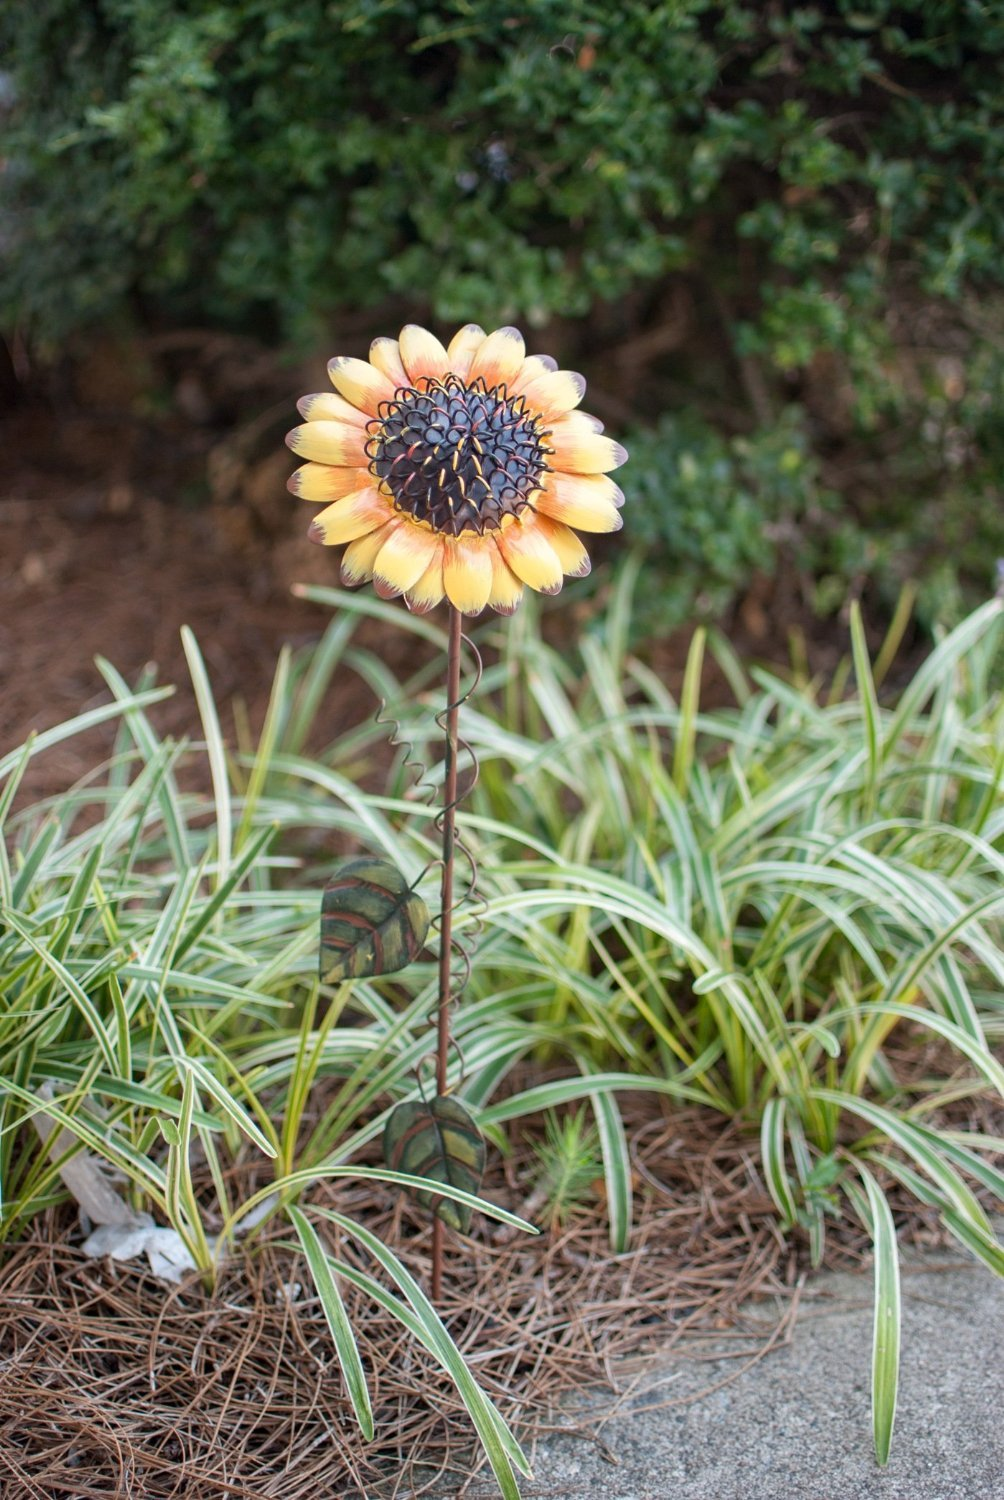 Grace Home Metal Sunflower Garden Stake Large Flower Patio Lawn Yard Stake Decor by Grace Home (Image #3)